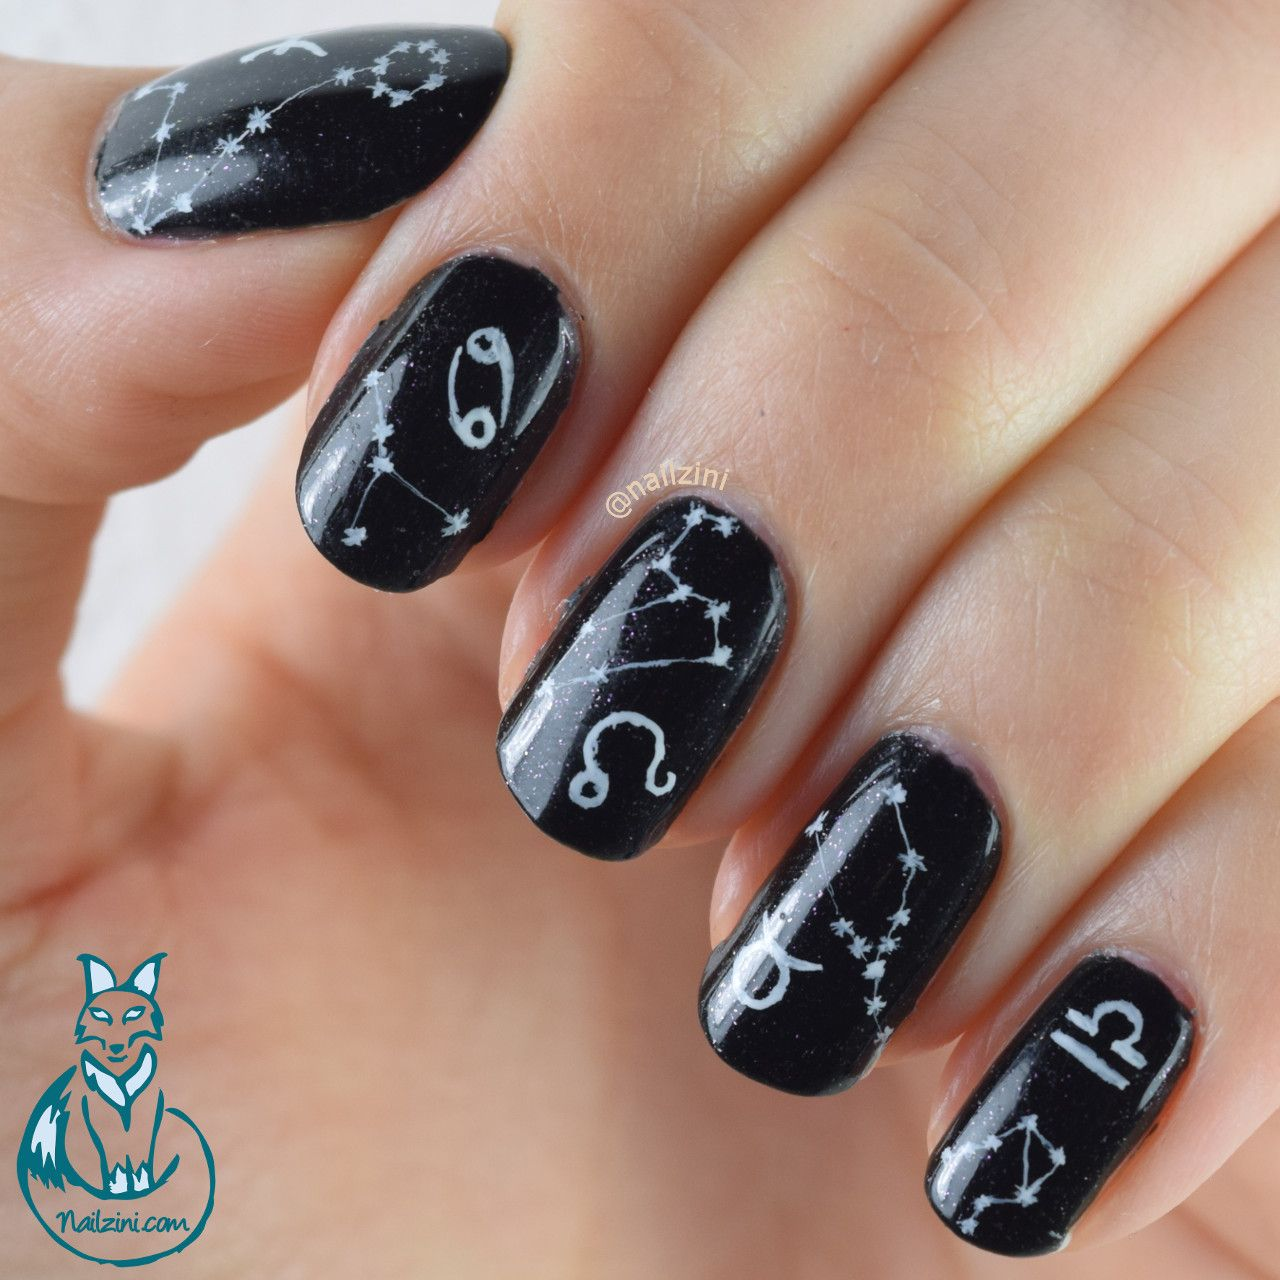 Nailzini: A Nail Art Blog: Zodiac Signs Nail Art | Detailed Freehand ...